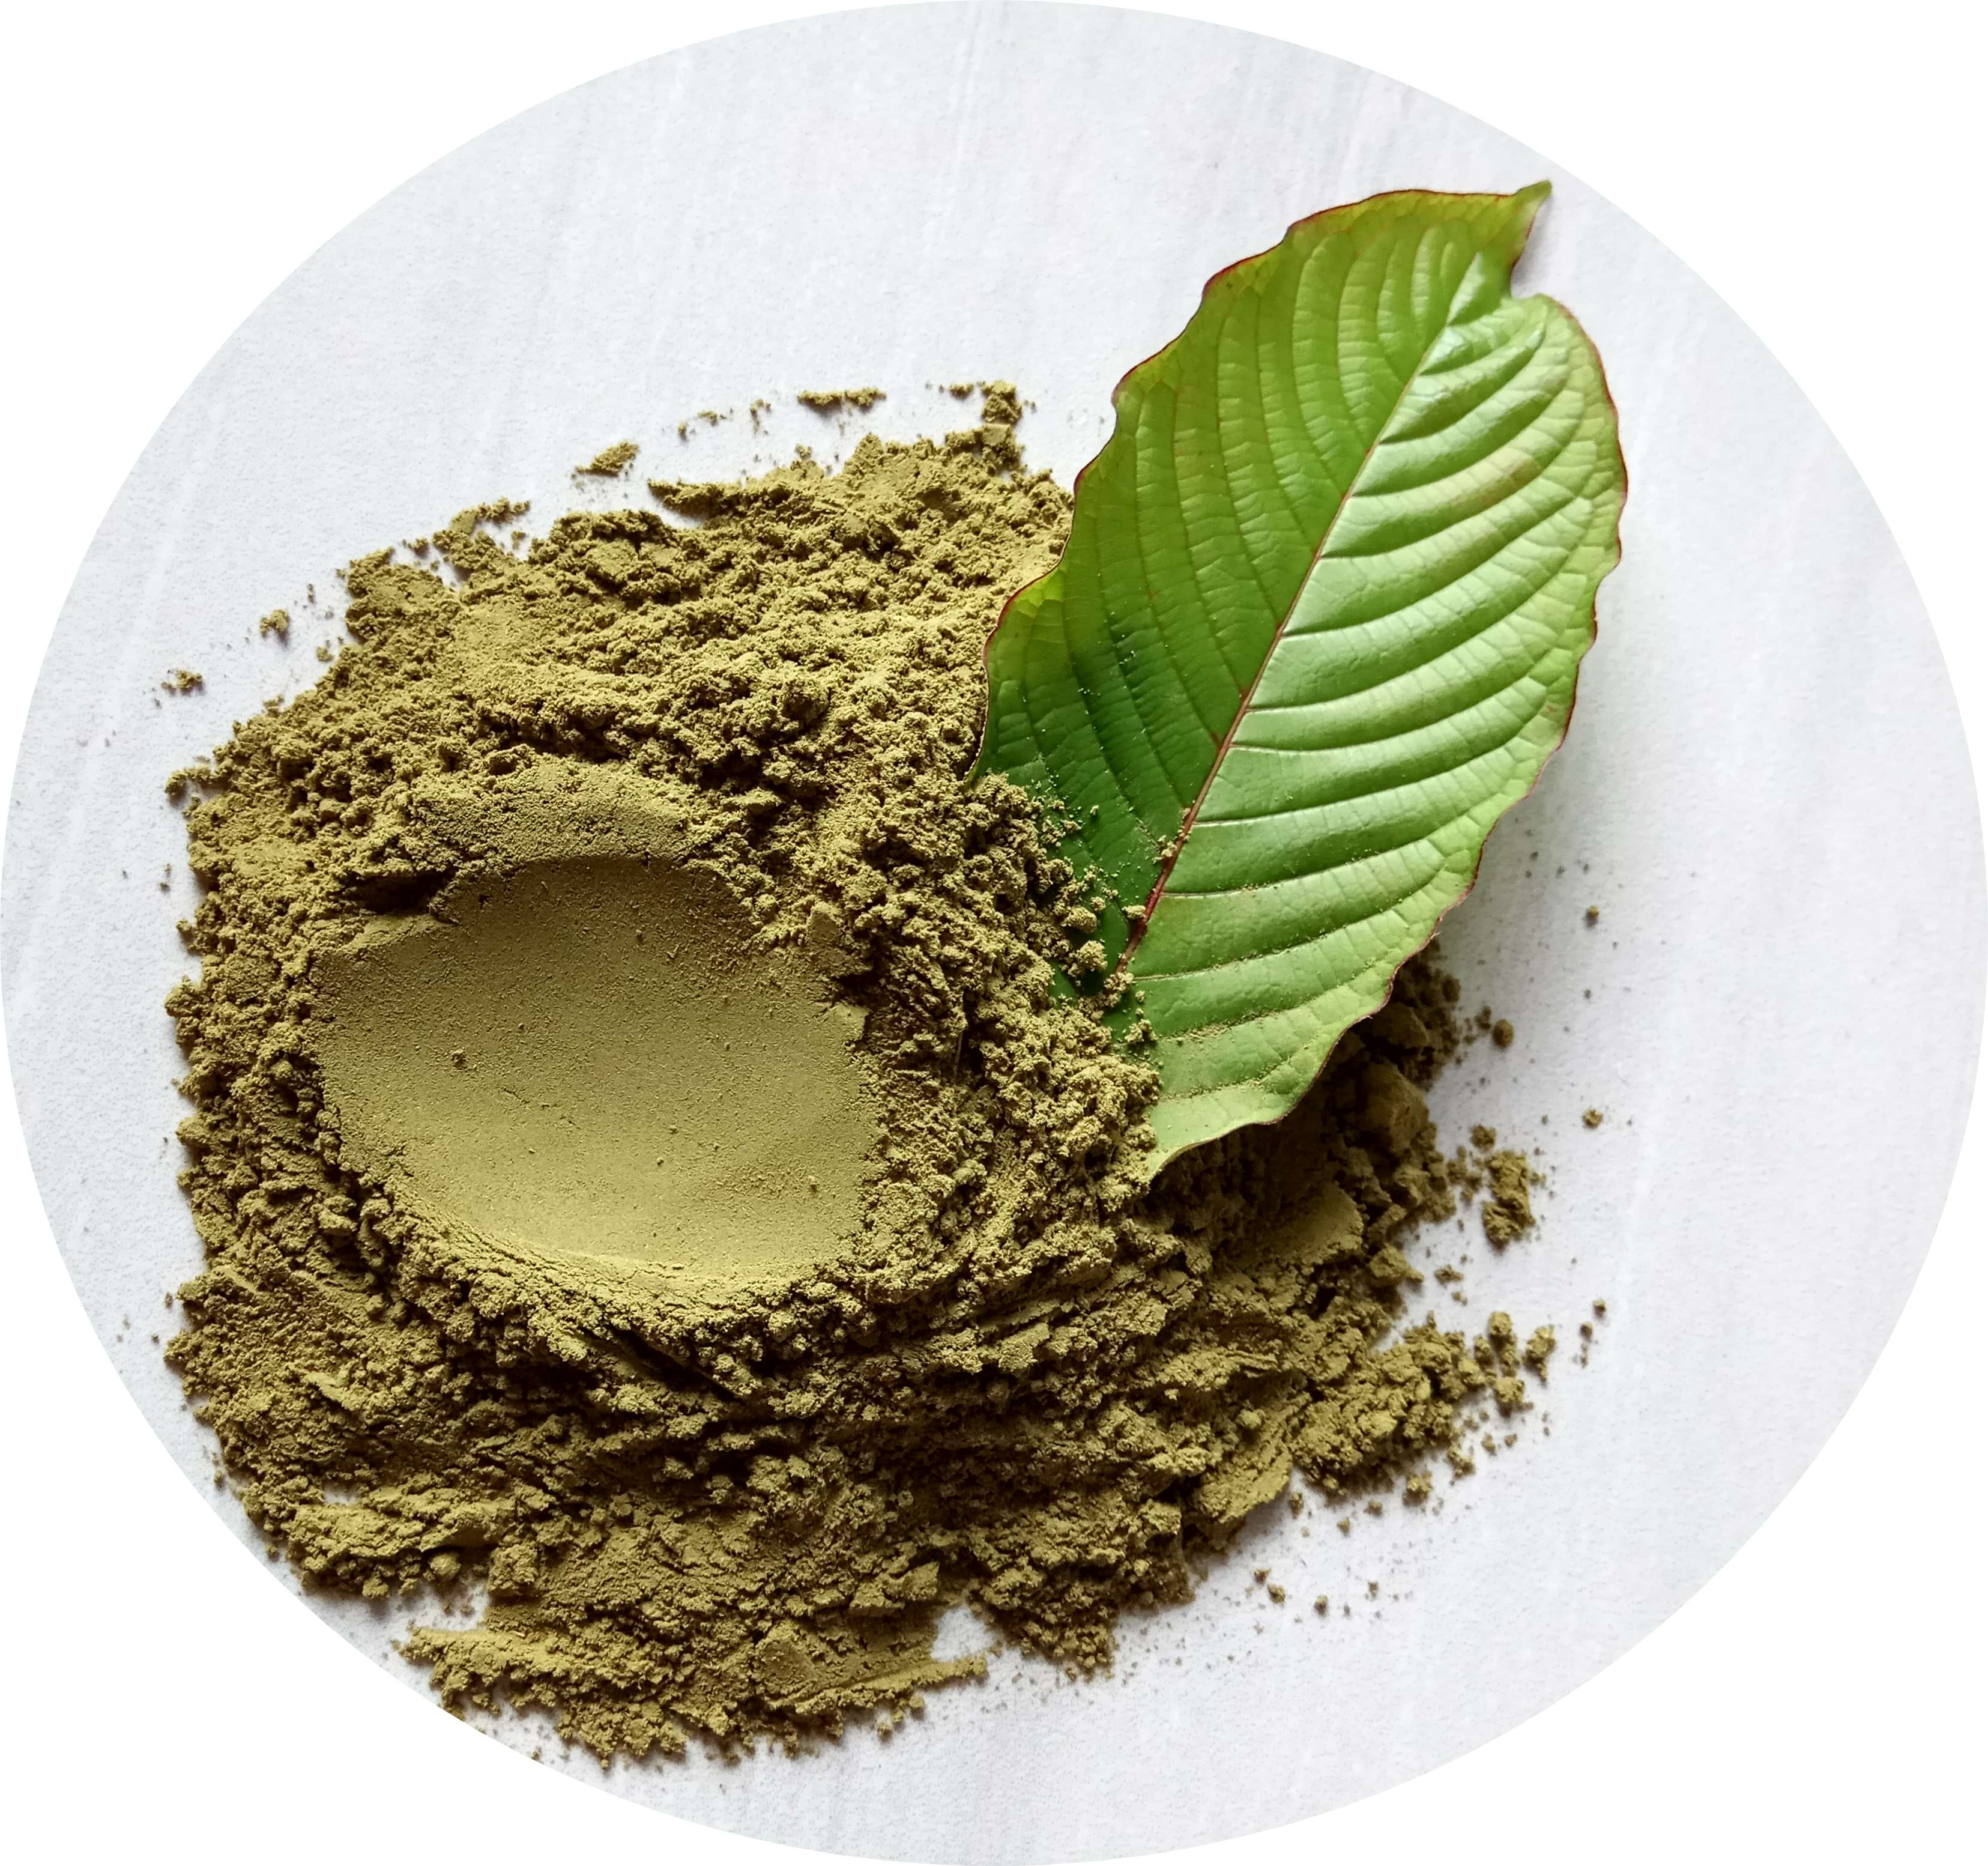 red maengda kratom effects